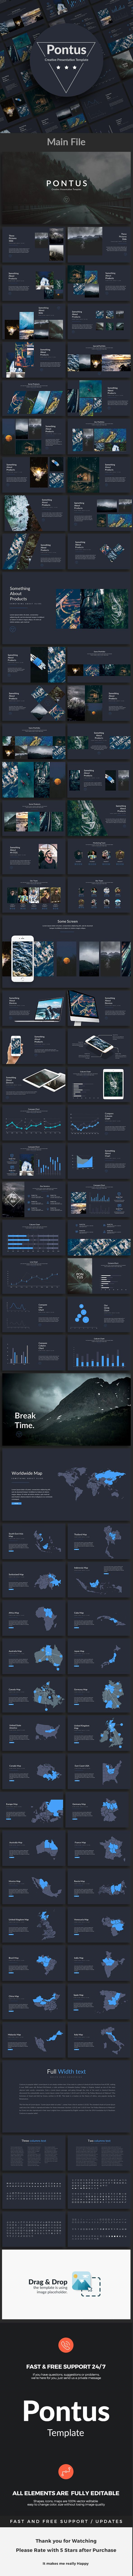 Pontus  Creative Powerpoint Template — Powerpoint PPT #bleached #data charts • Download ➝ https://graphicriver.net/item/pontus-creative-powerpoint-template/19109048?ref=pxcr